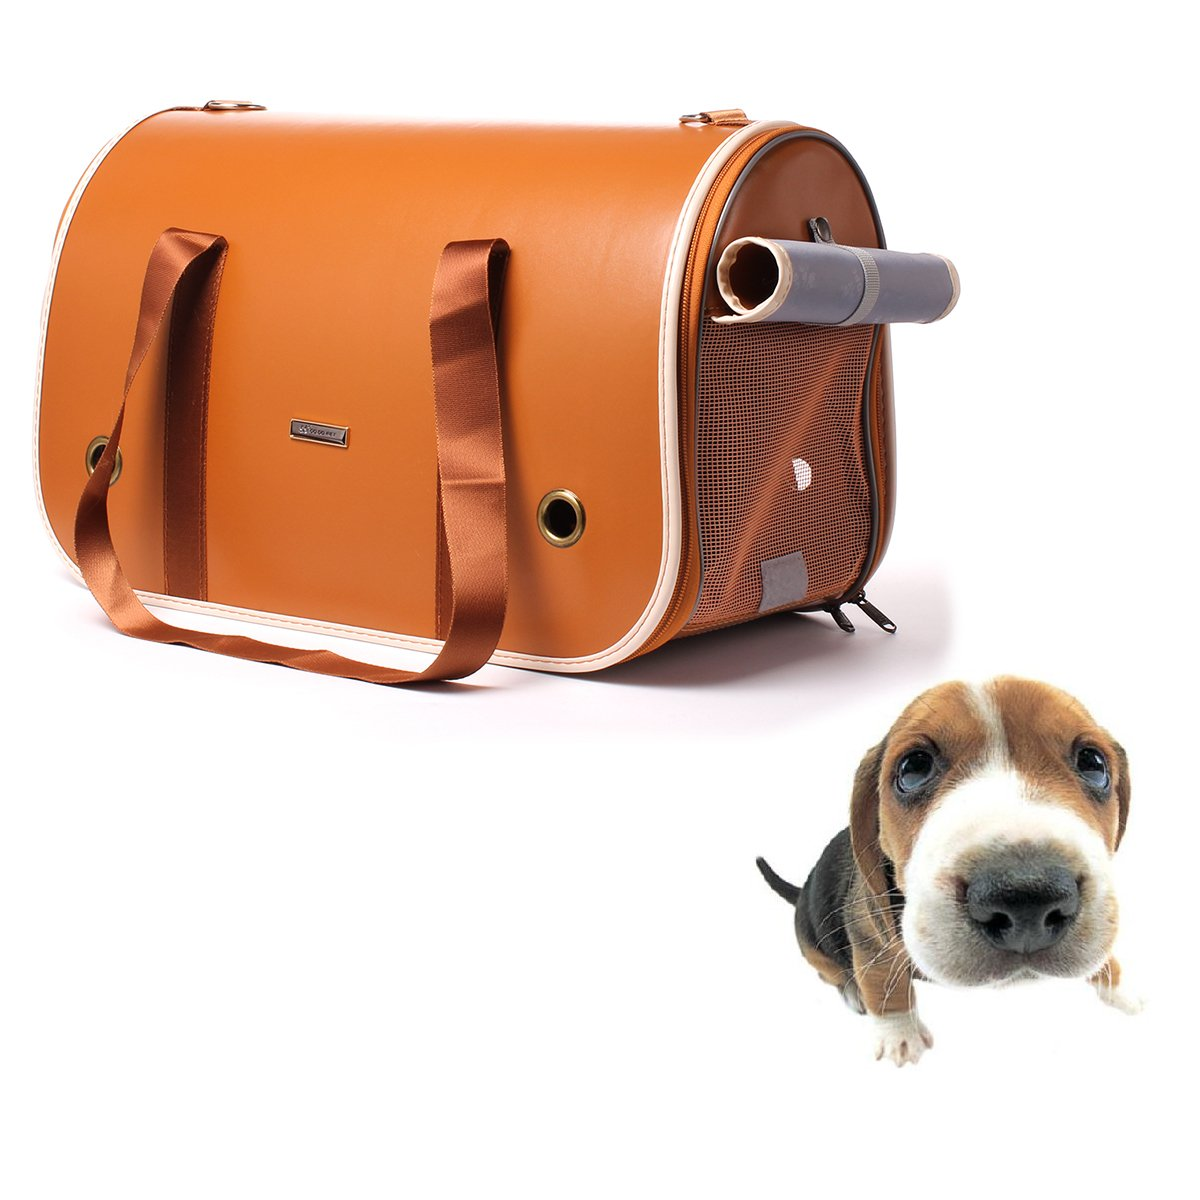 Ezeso Puppy Pet Carrier Airline Approved Soft Sided Dogs Cats Carriers Foldin..